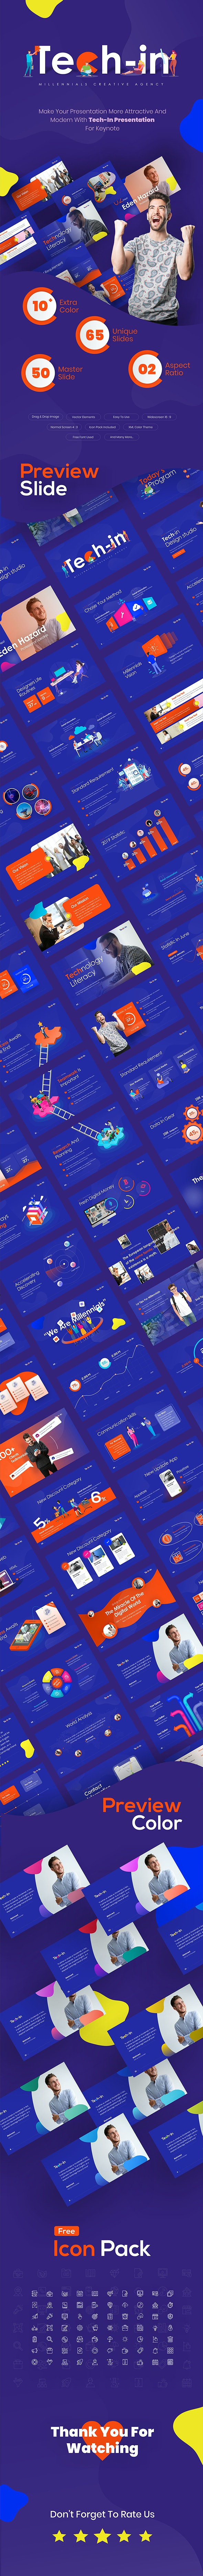 5 Best Presentation & Powerpoint Templates  for December 2019